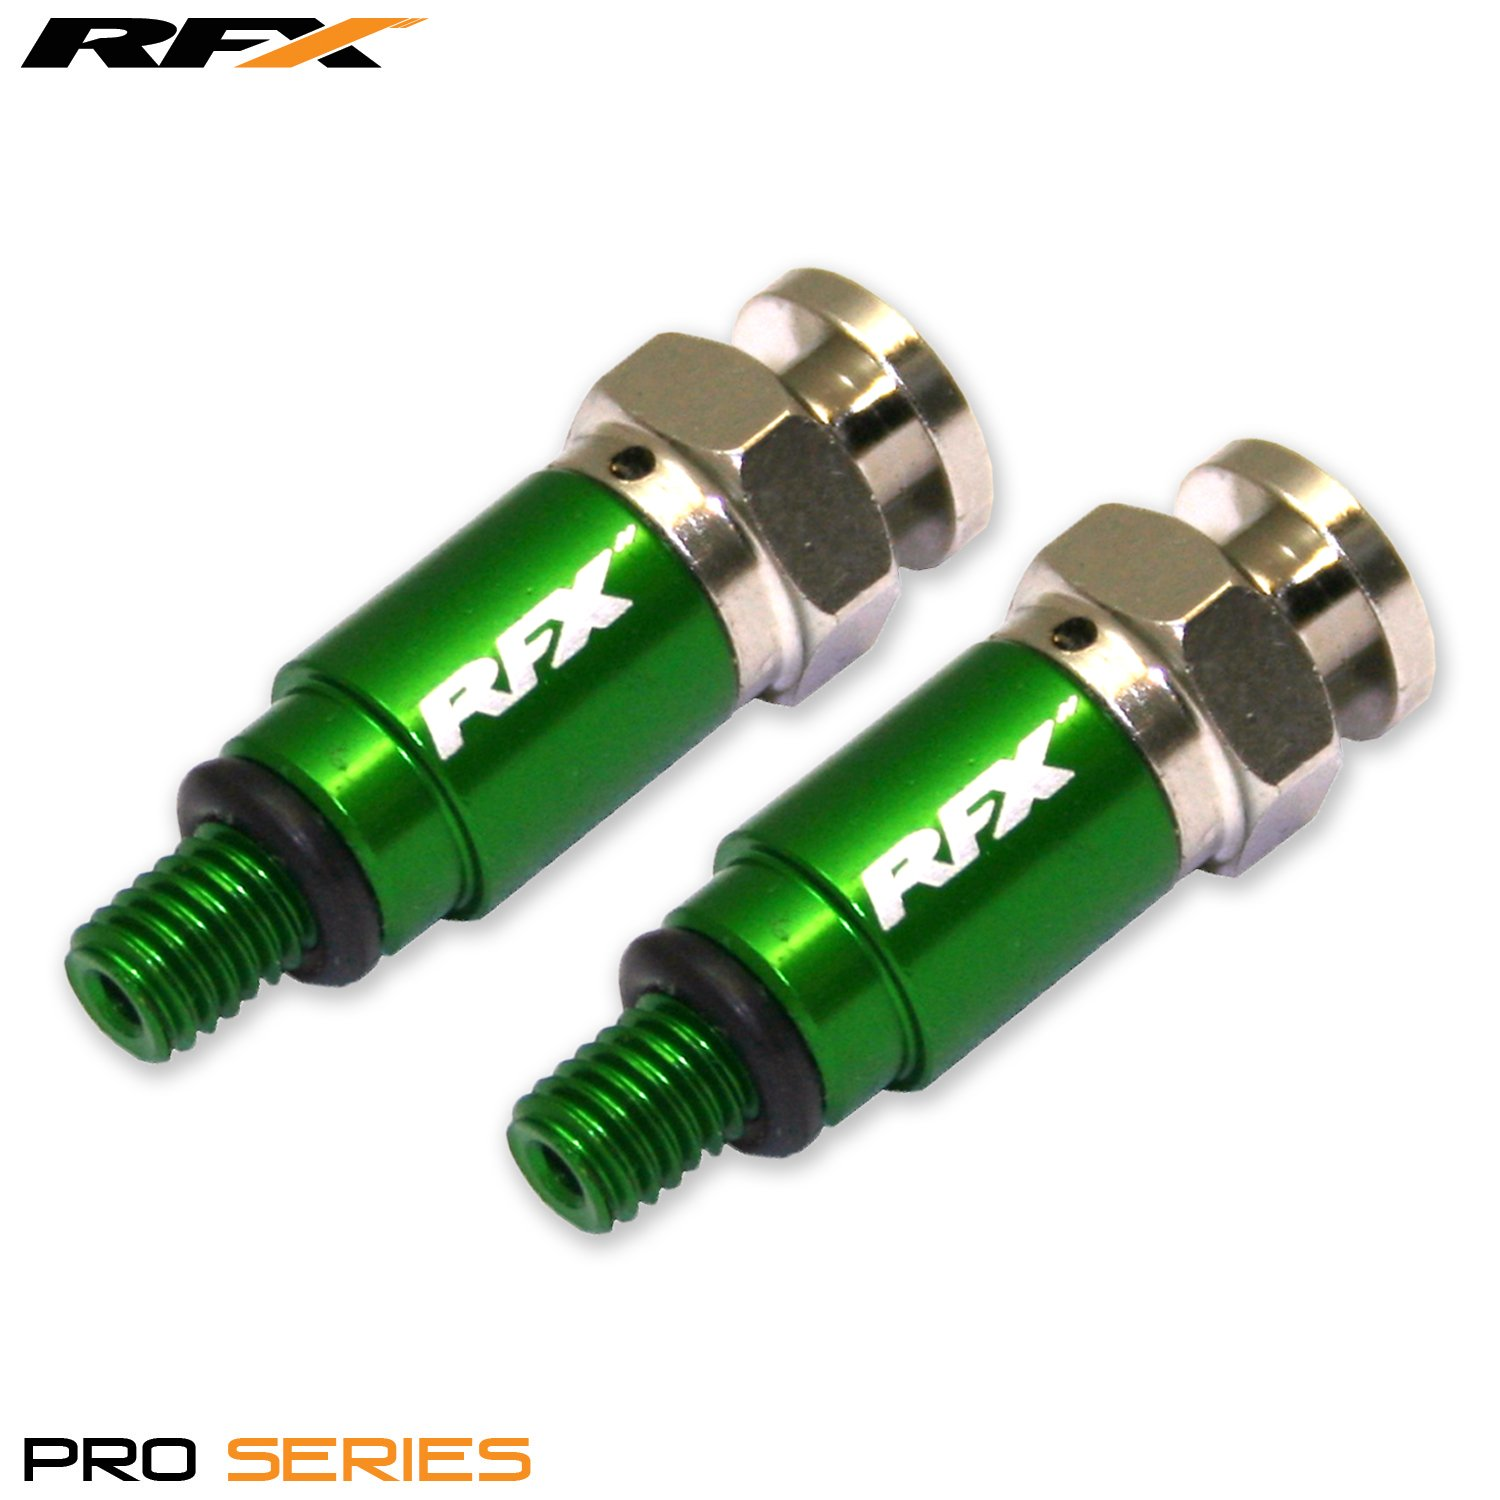 RFX FXFB 101M5 99GN Green Bleeders M5 x 0.8mm Kayaba//Showa Please Note not for use with air Forks